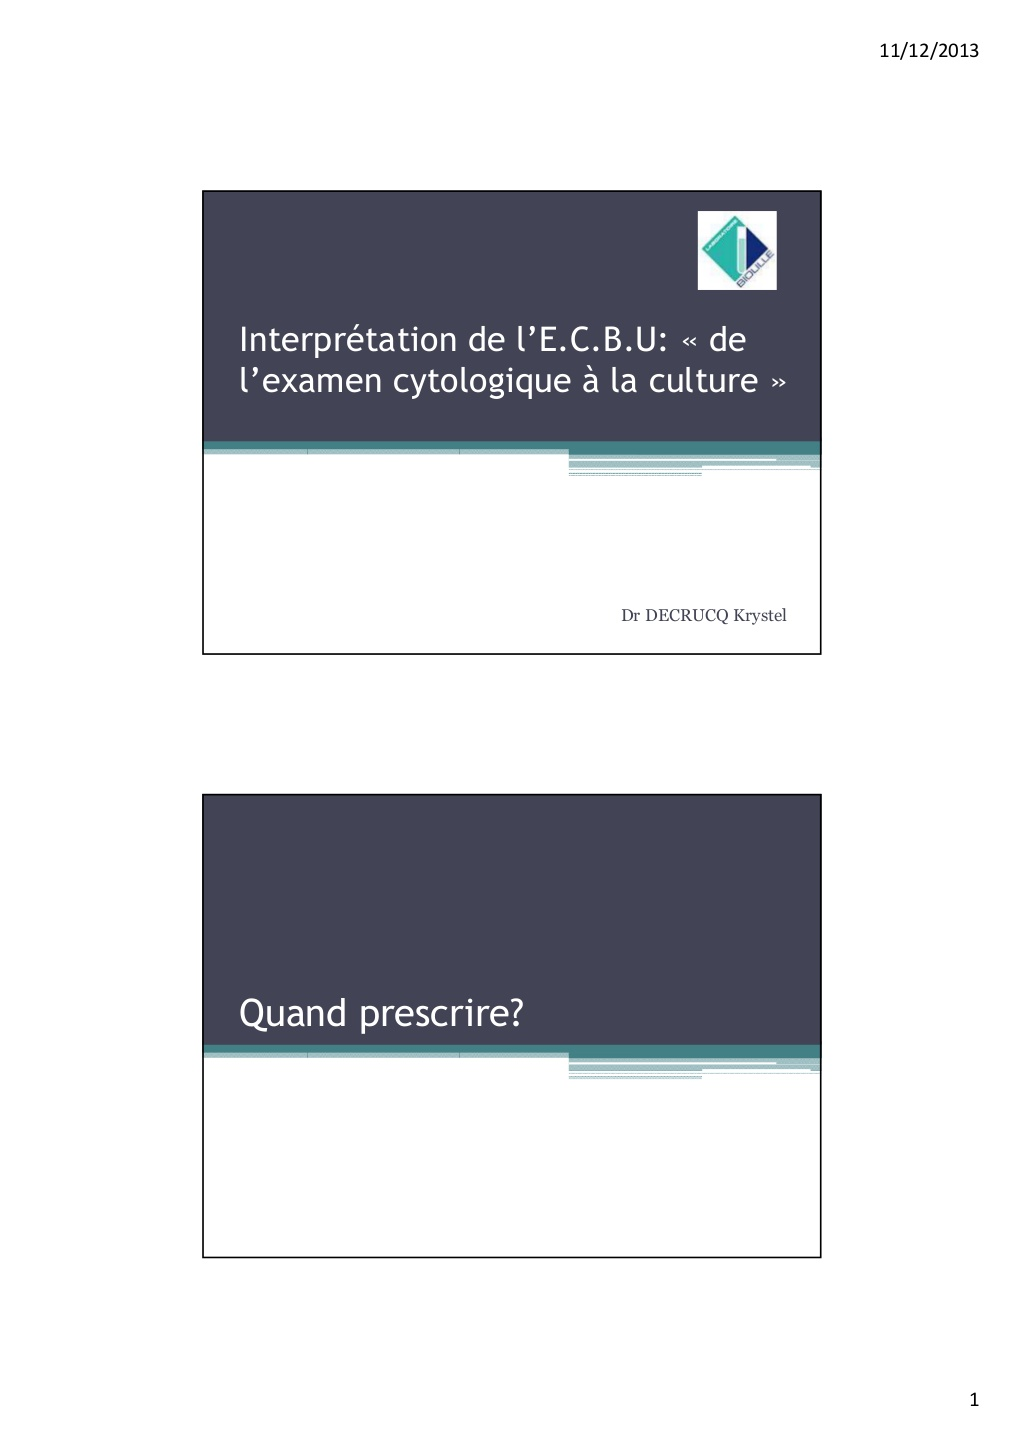 L'interprétation de l'E.C.B.U .PDF